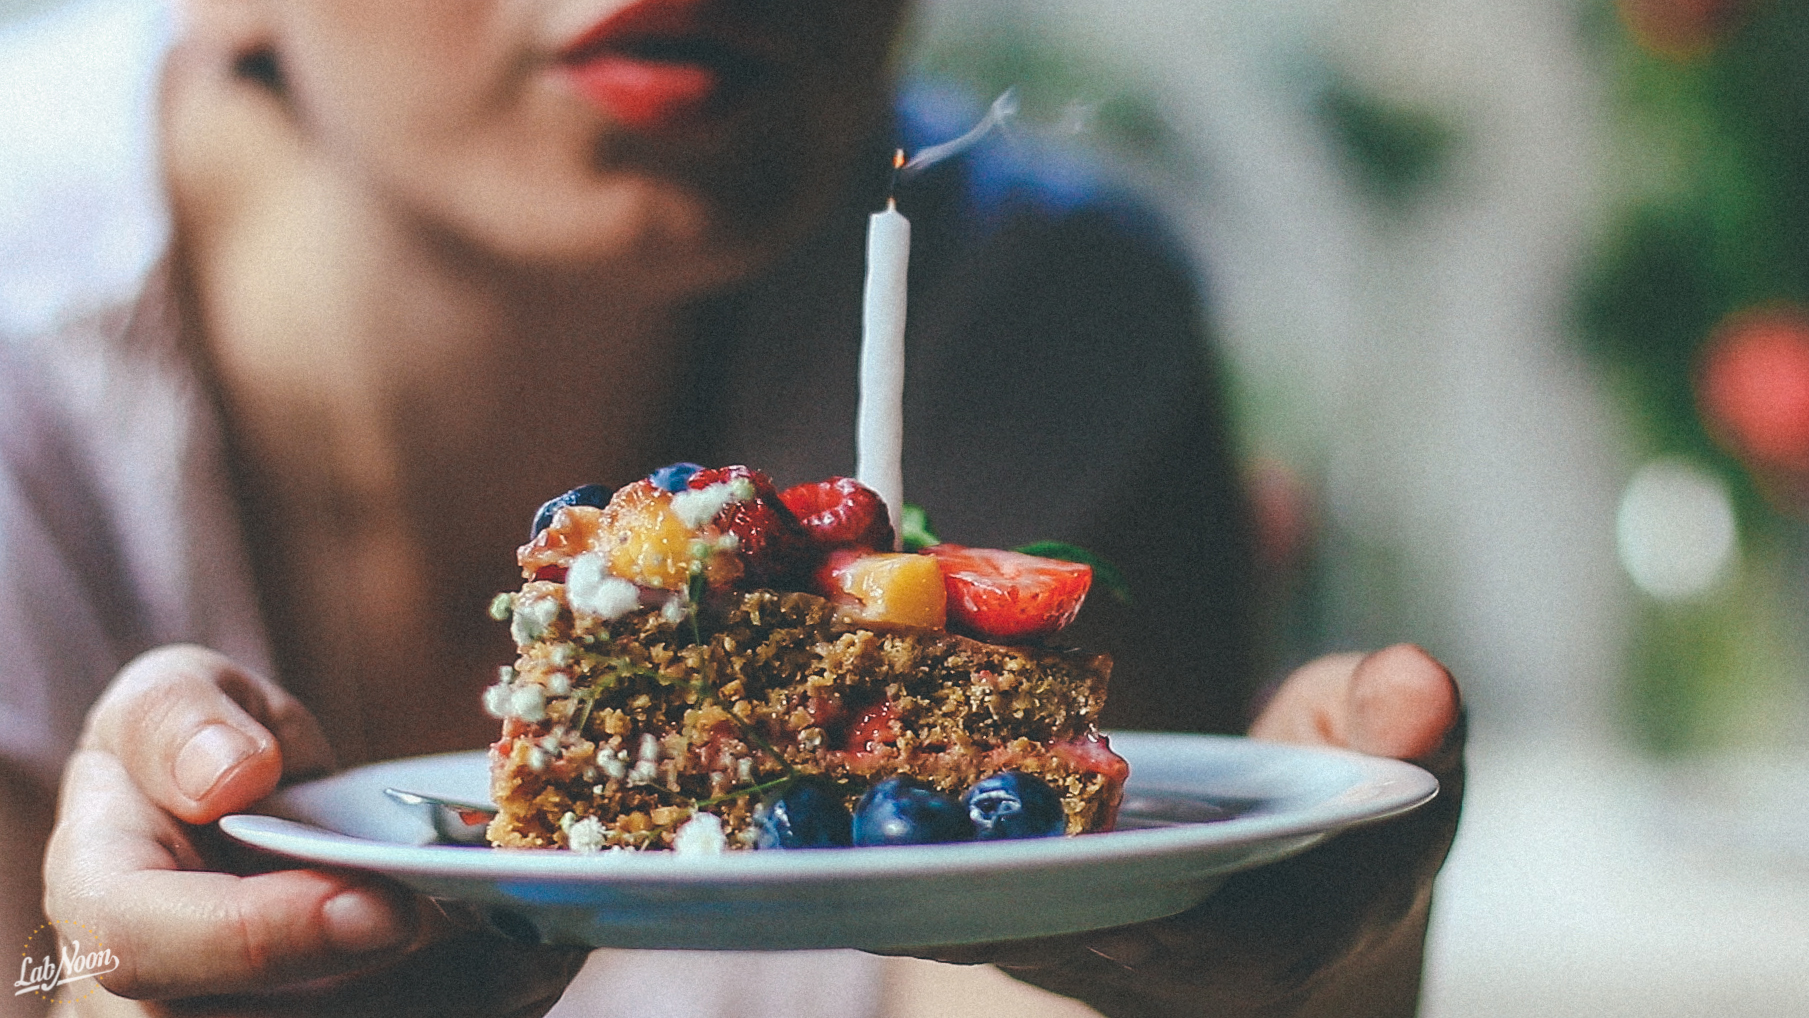 Lab Noon's Fruity Birthday Cake | Torta di Compleanno di Lab Noon -11